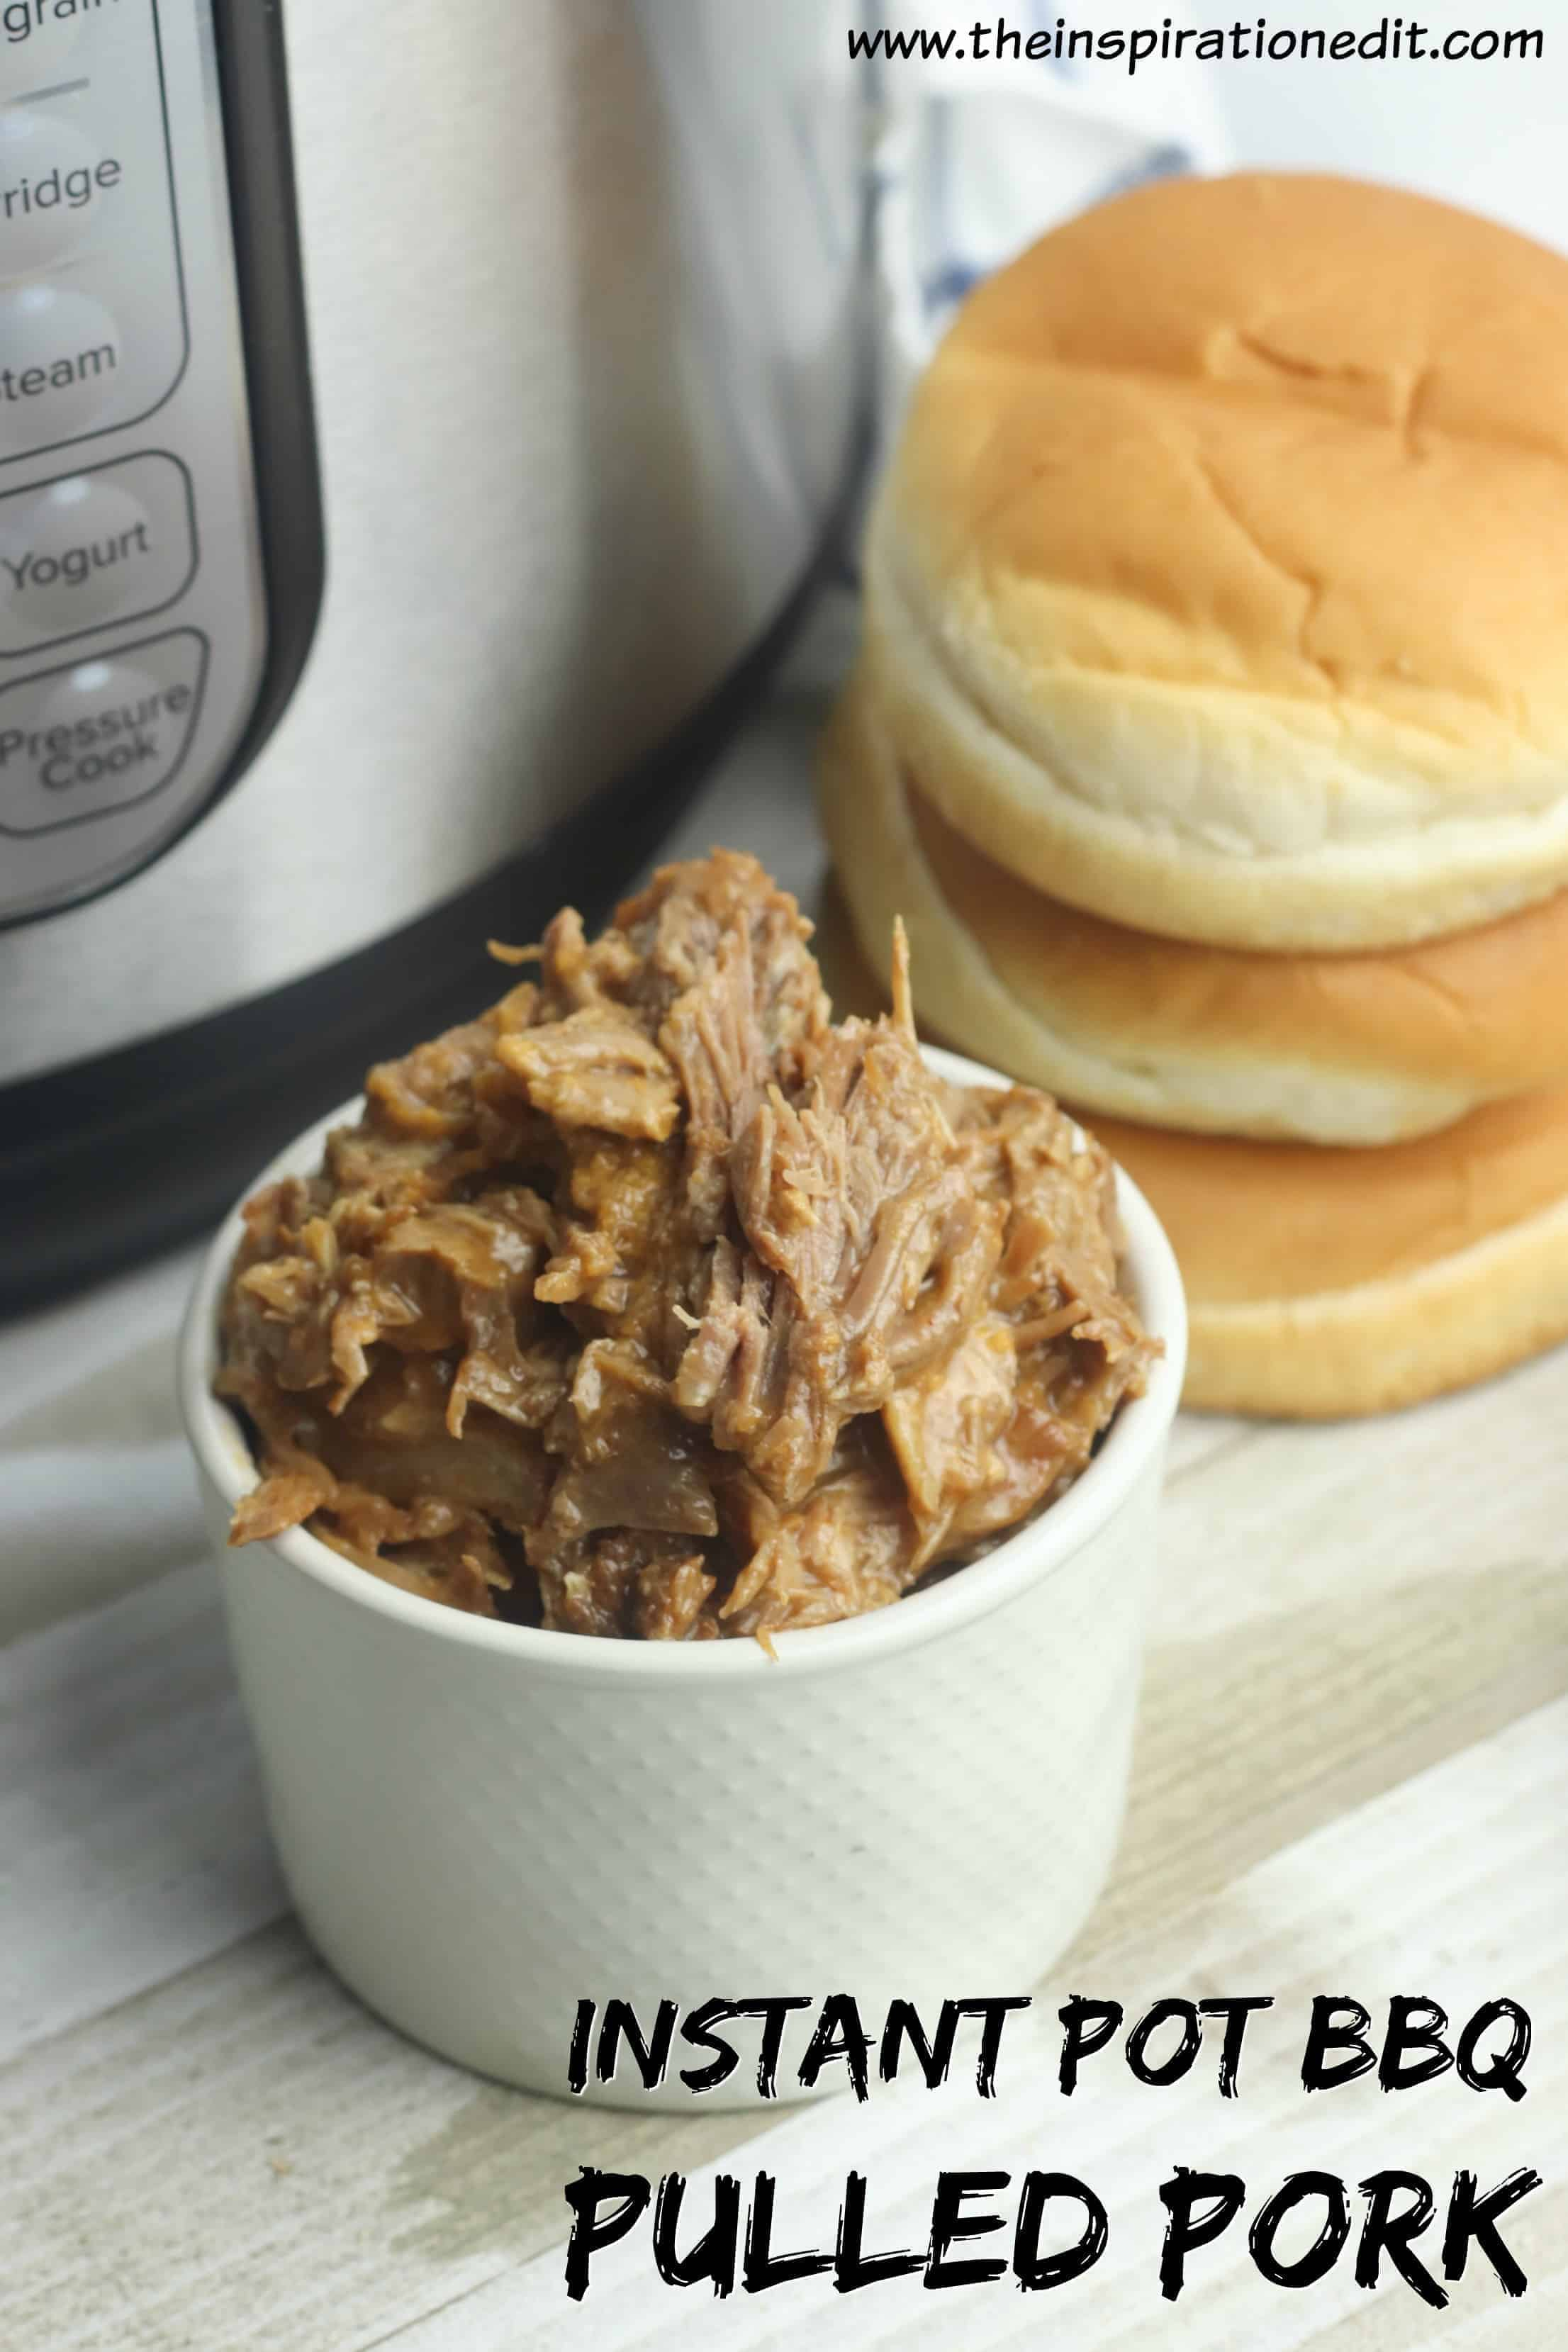 Delicious Instant Pot BBQ Pulled Pork is only a few minutes away!